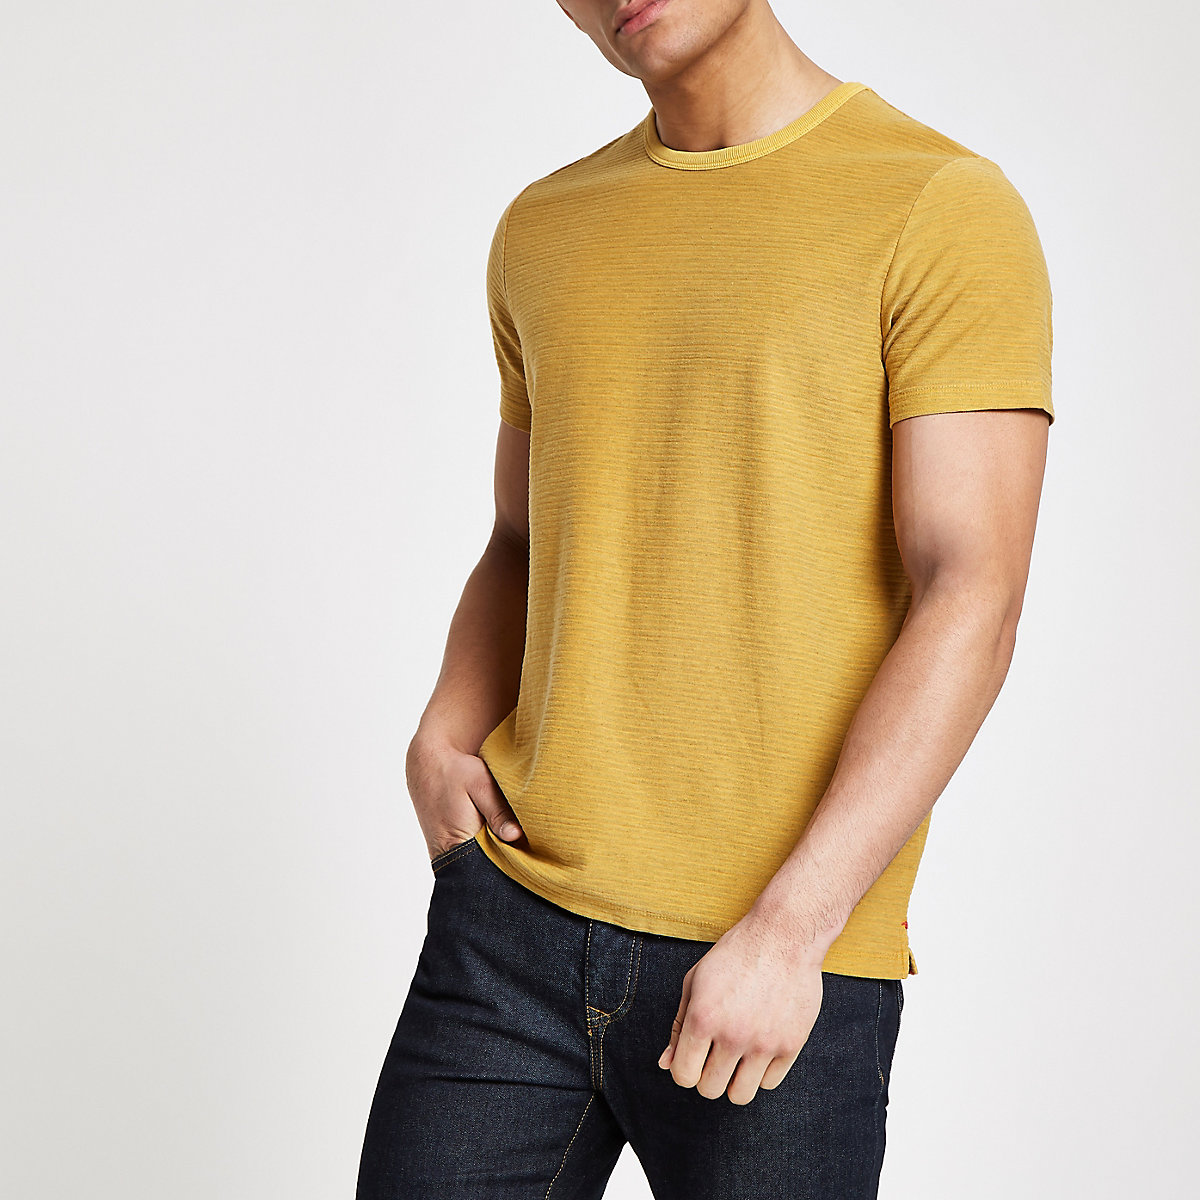 Pepe Jeans yellow stripe T-shirt